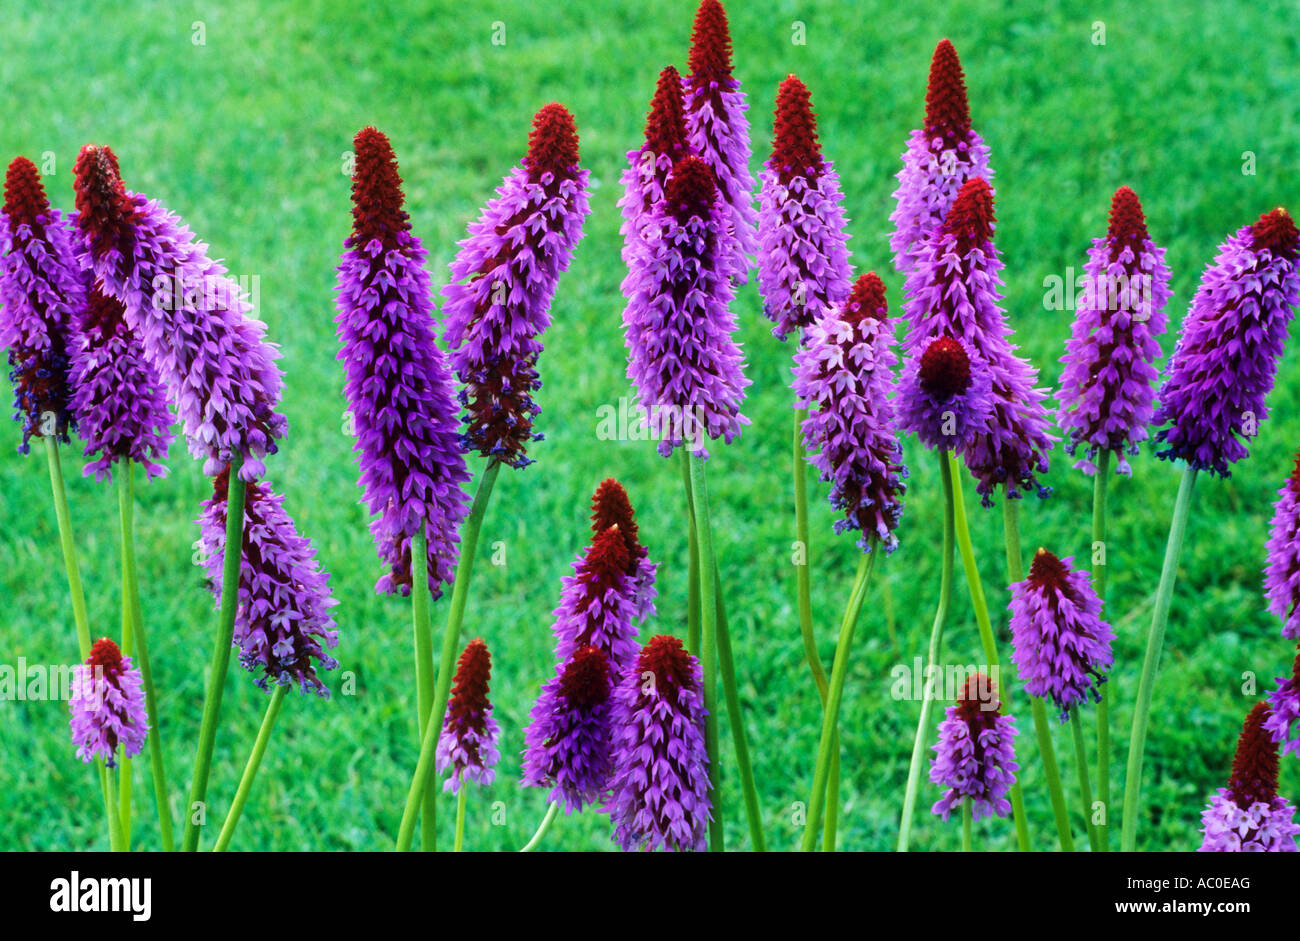 Merveilleux Primula Vialii, Purple And Red Flowers, Garden Plant Plants Flower Primulas  Primulae Drift Drifts